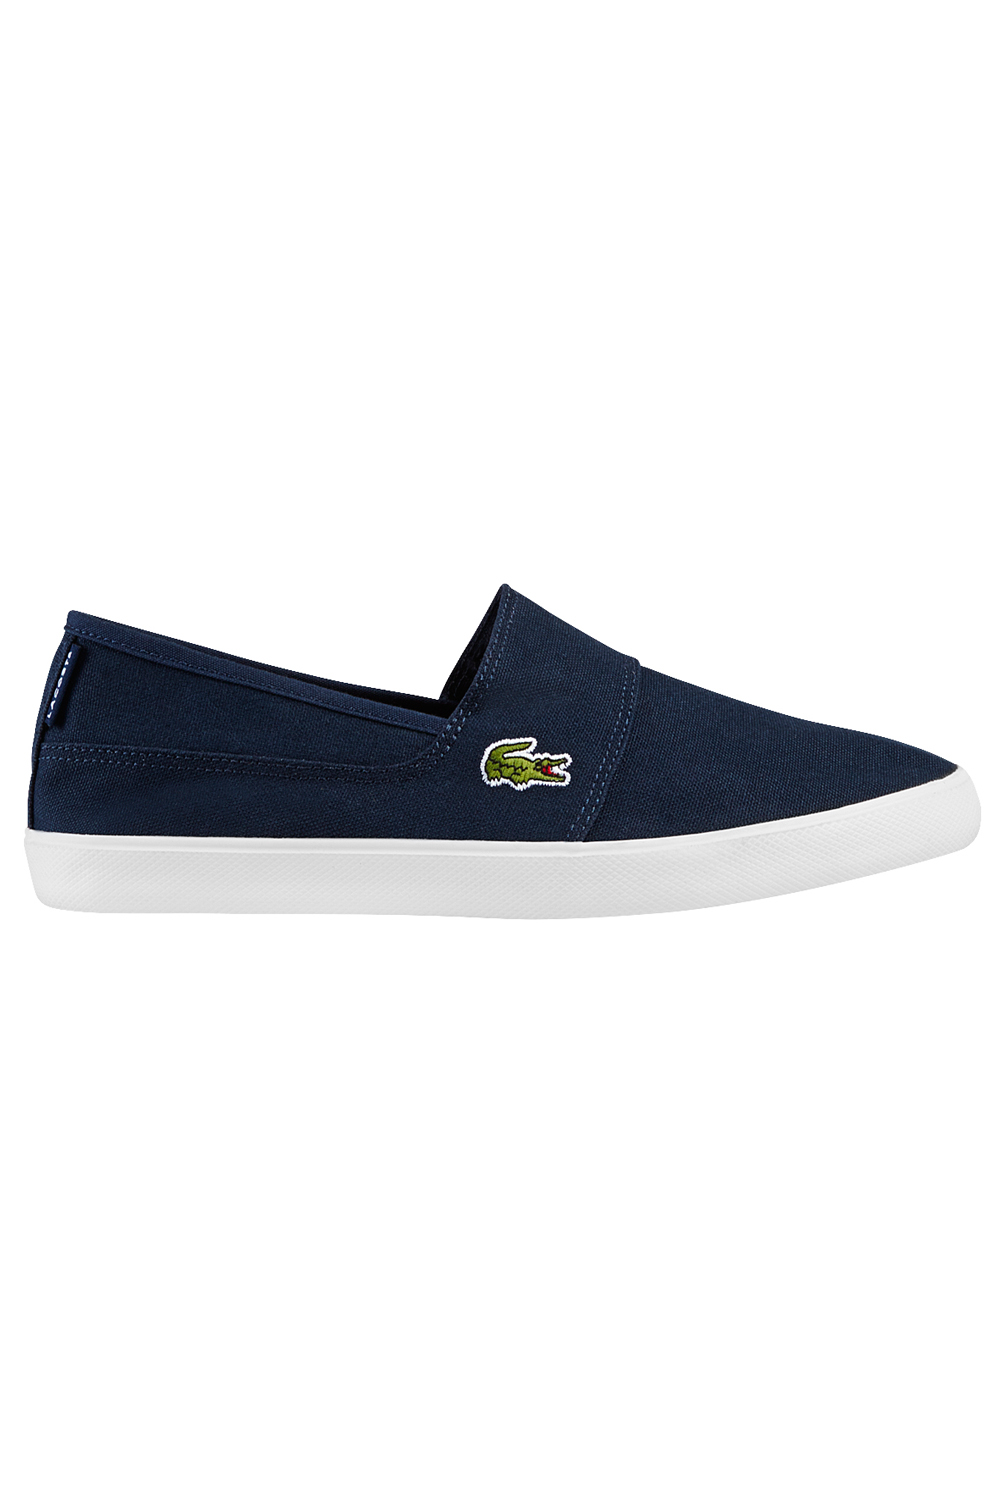 miniature 6 - Homme-Lacoste-Marice-Lacet-Toile-Chaussures-Decontractees-Confortable-Tennis-Escarpins